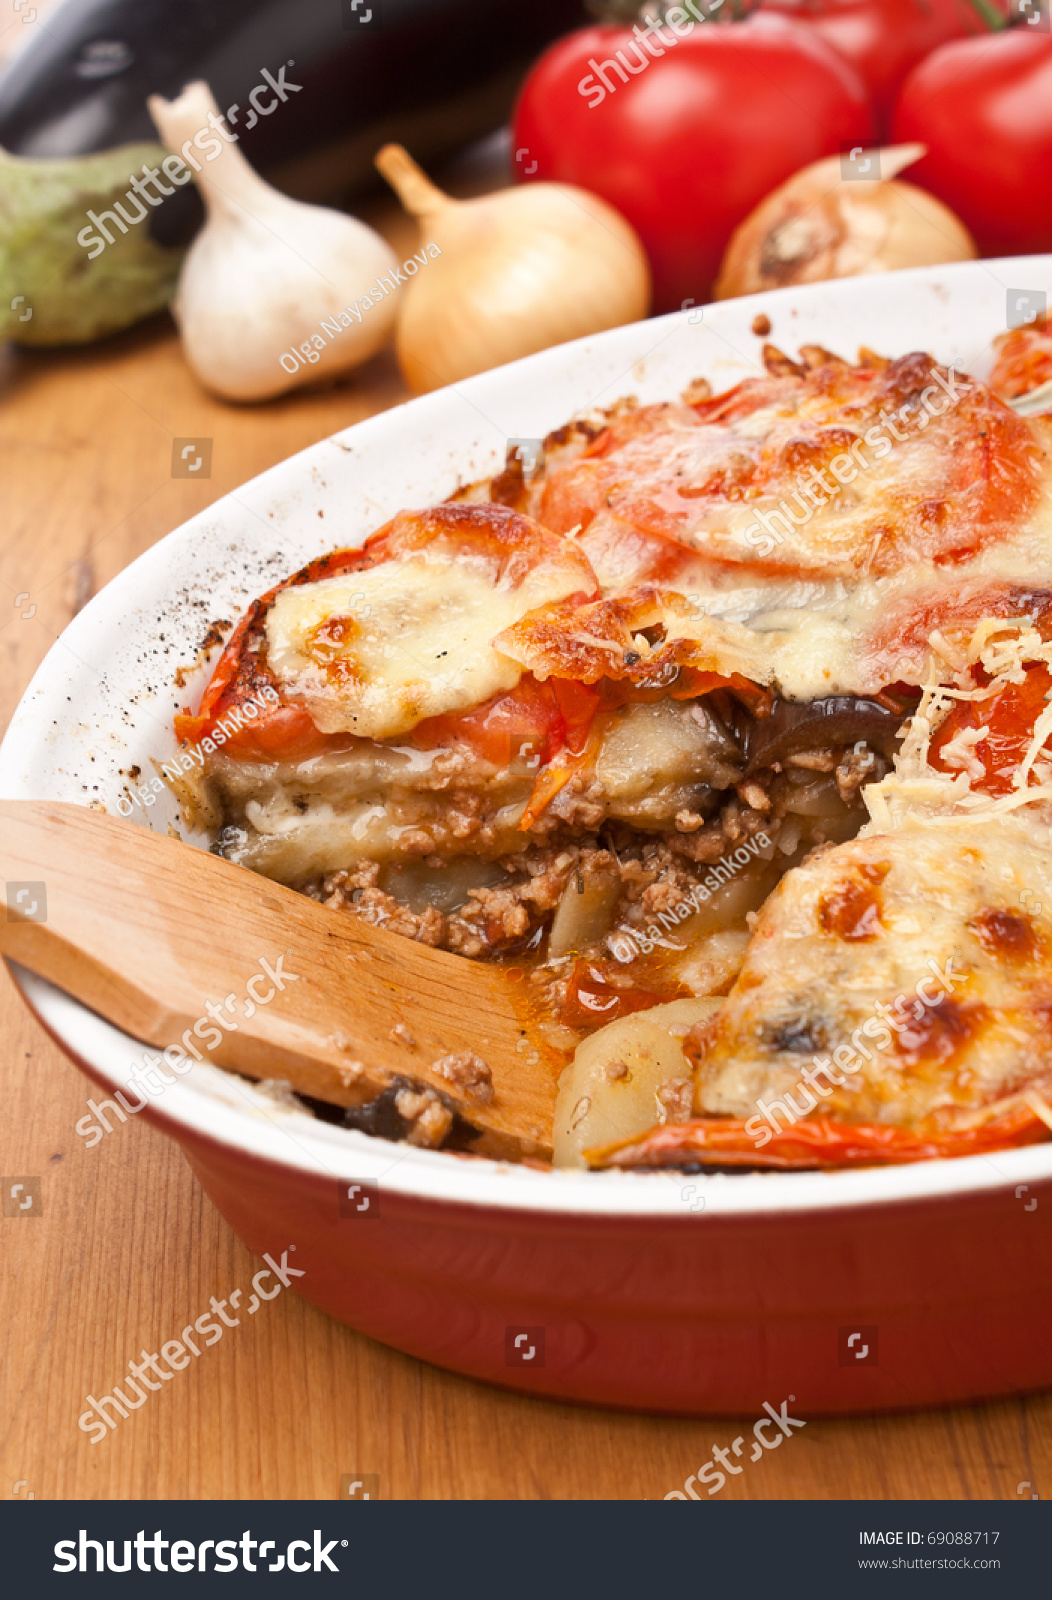 Casserole Dish With Classic Greek Moussaka With Eggplant ...